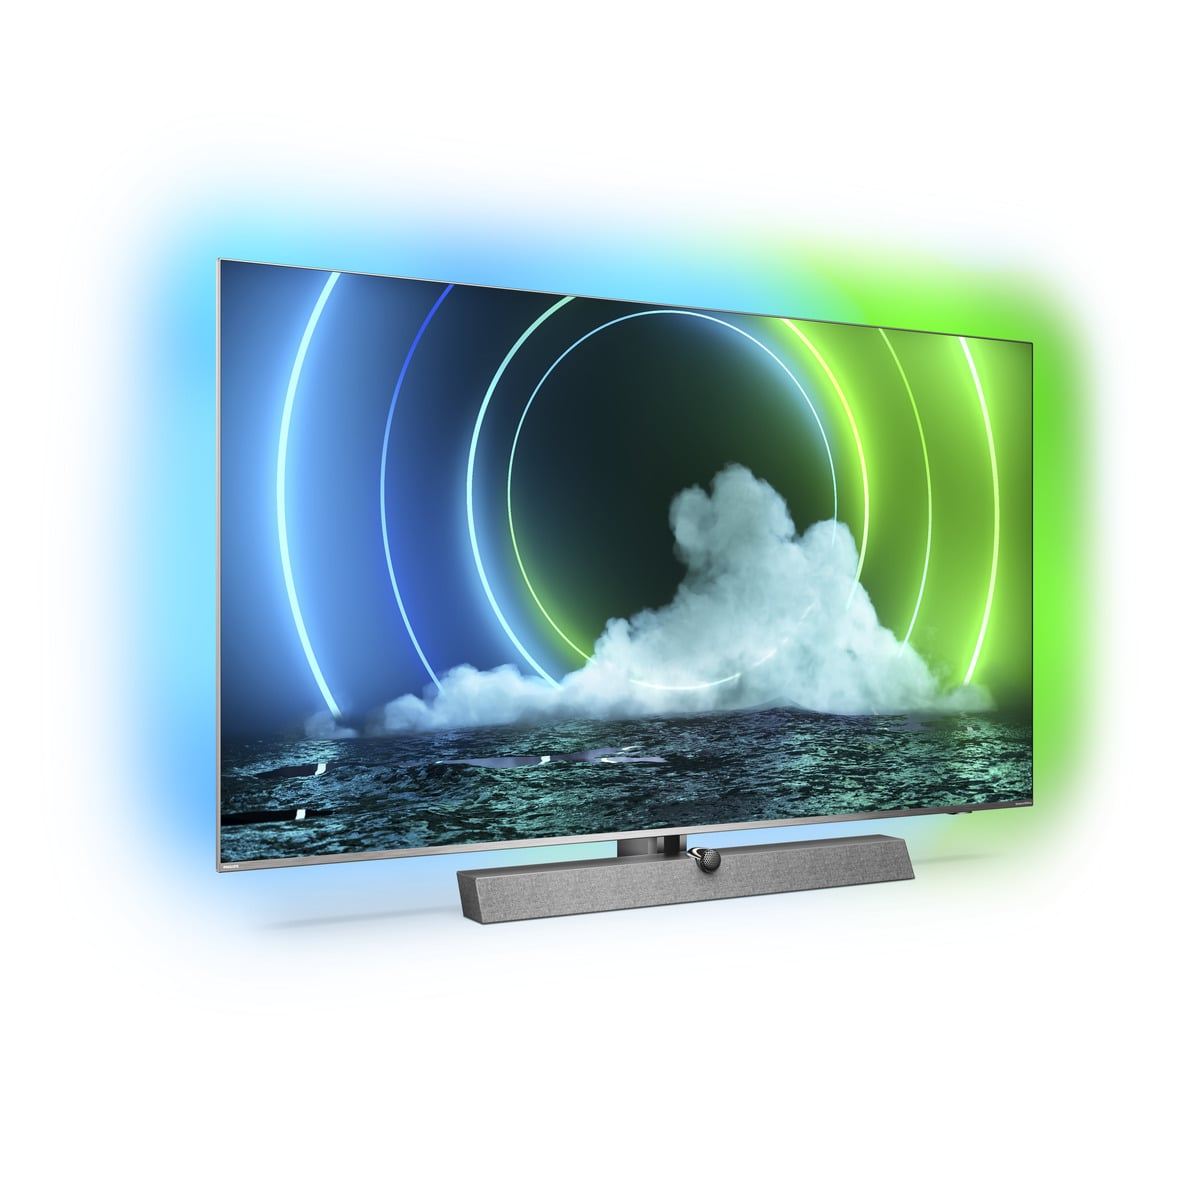 Philips MiniLED 9636